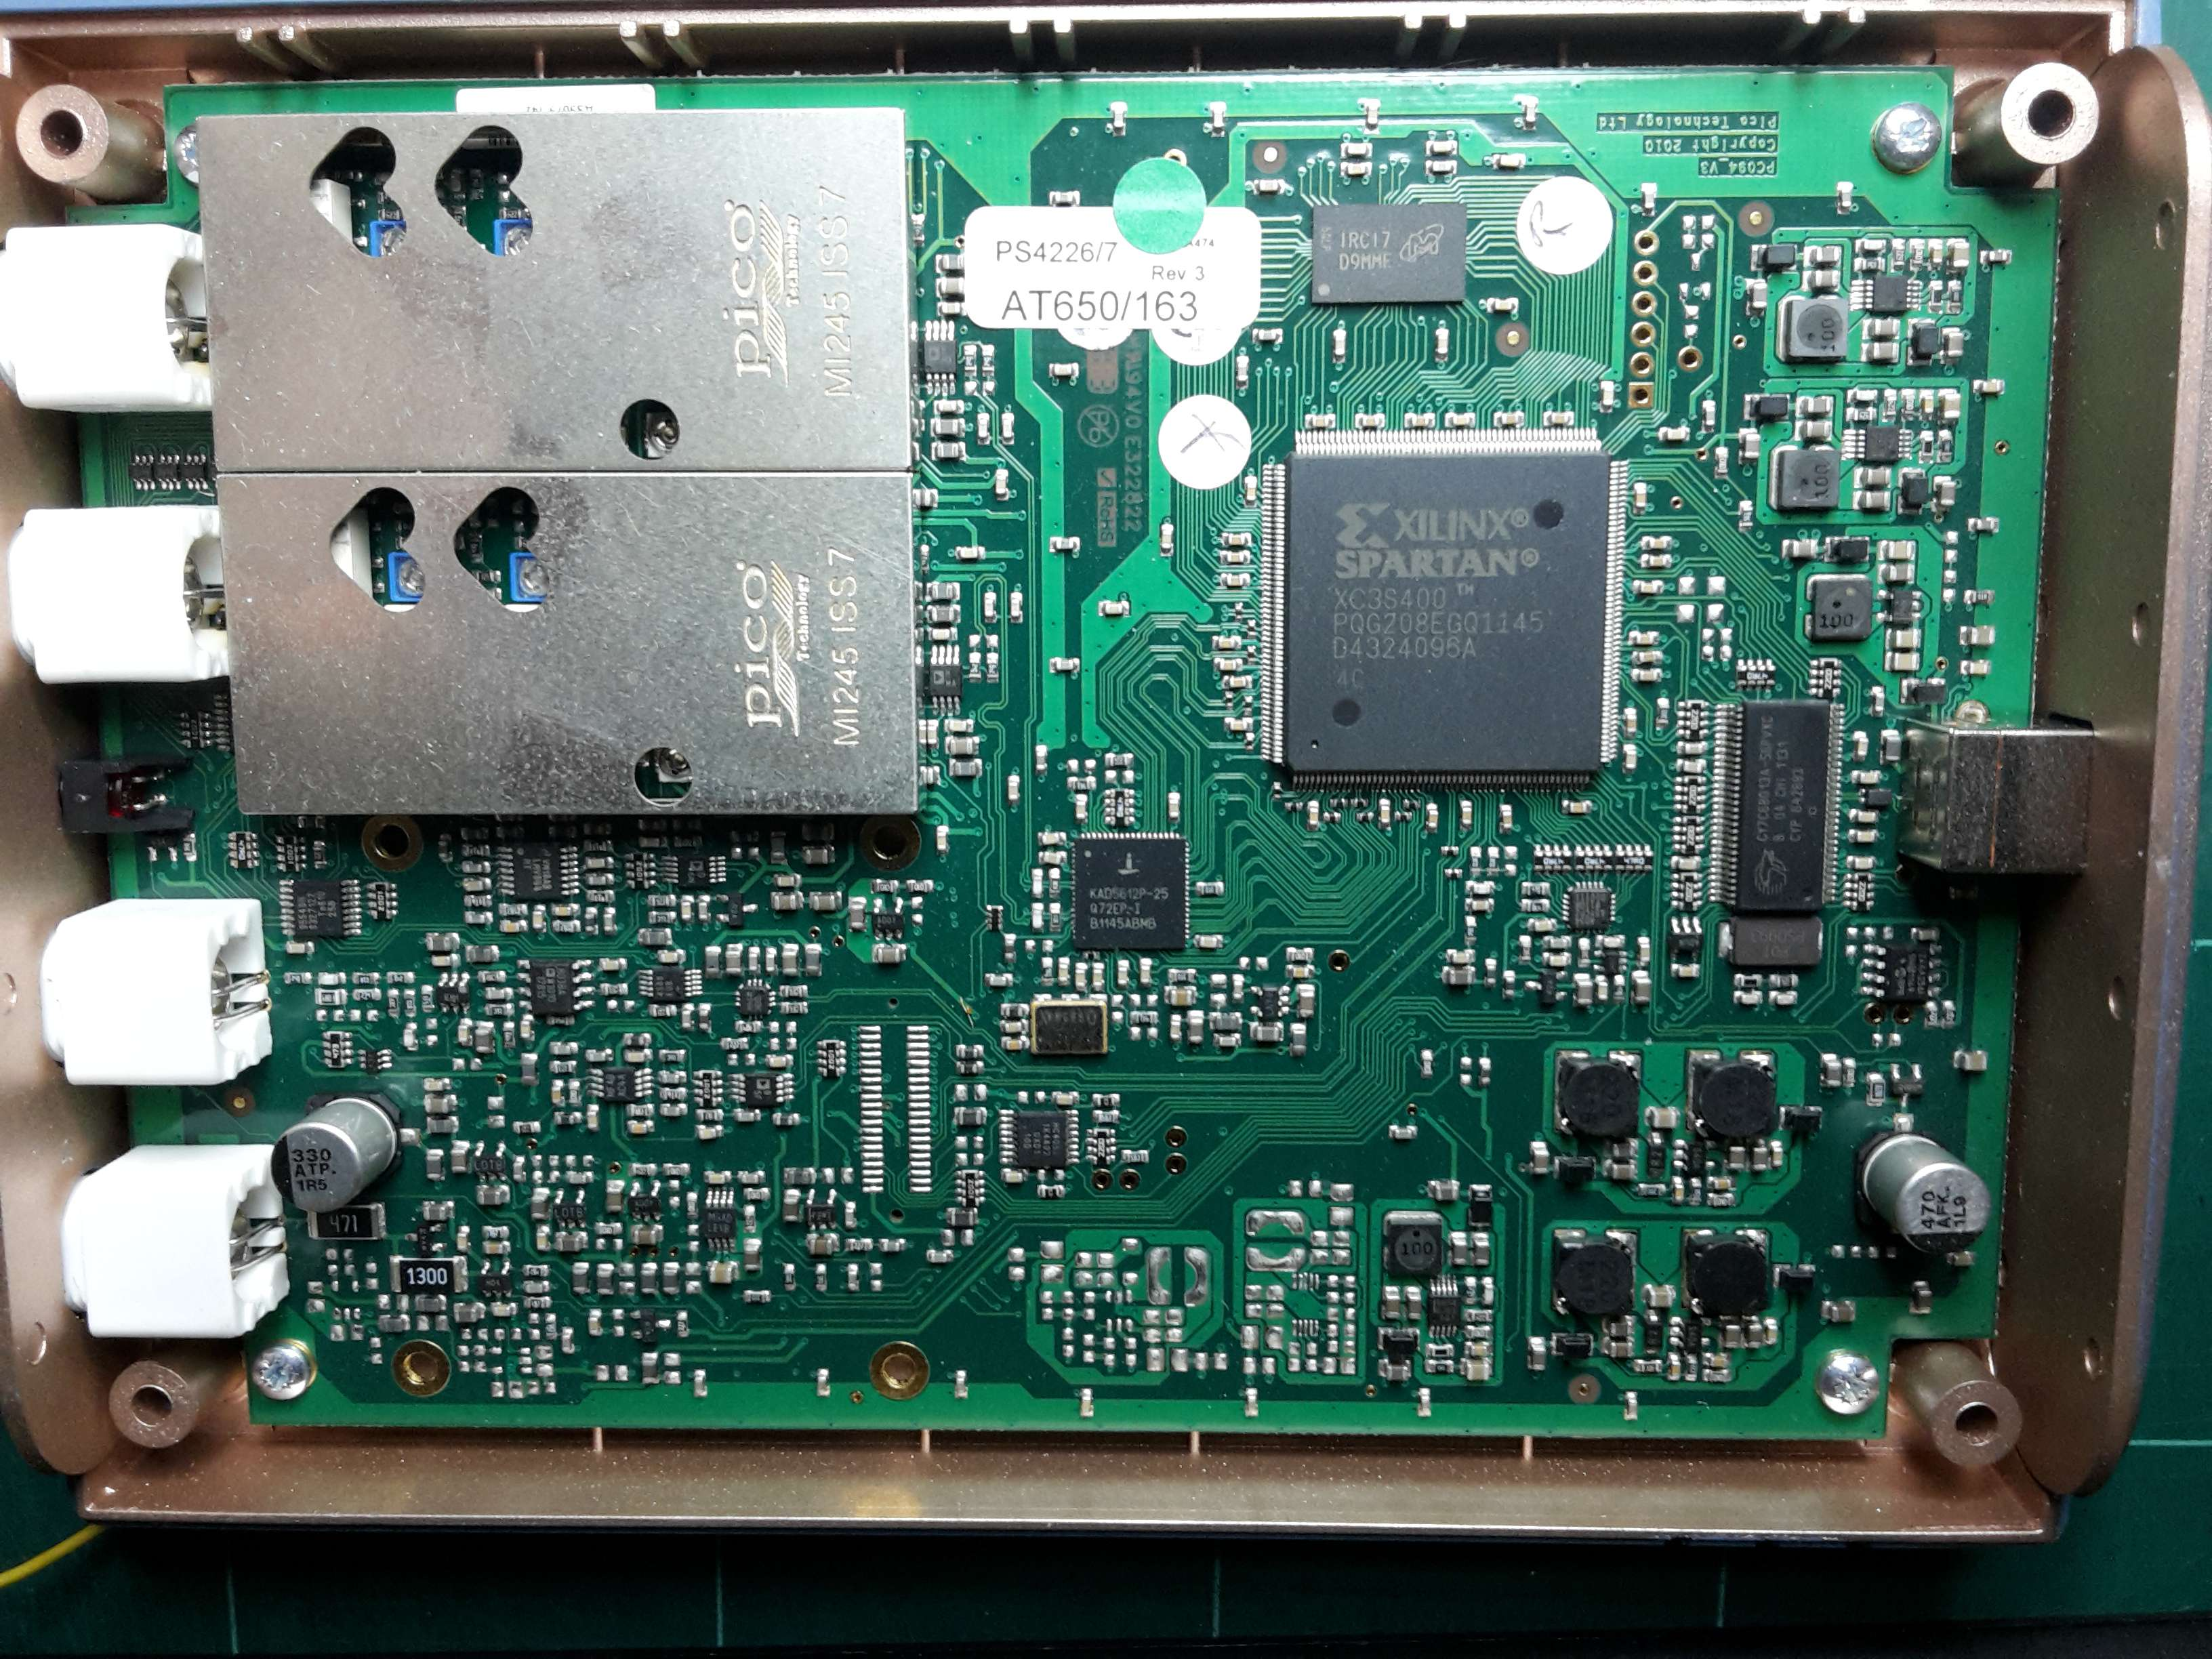 Contingut: PicoScope 4227 PCB. Source: Momex.cat